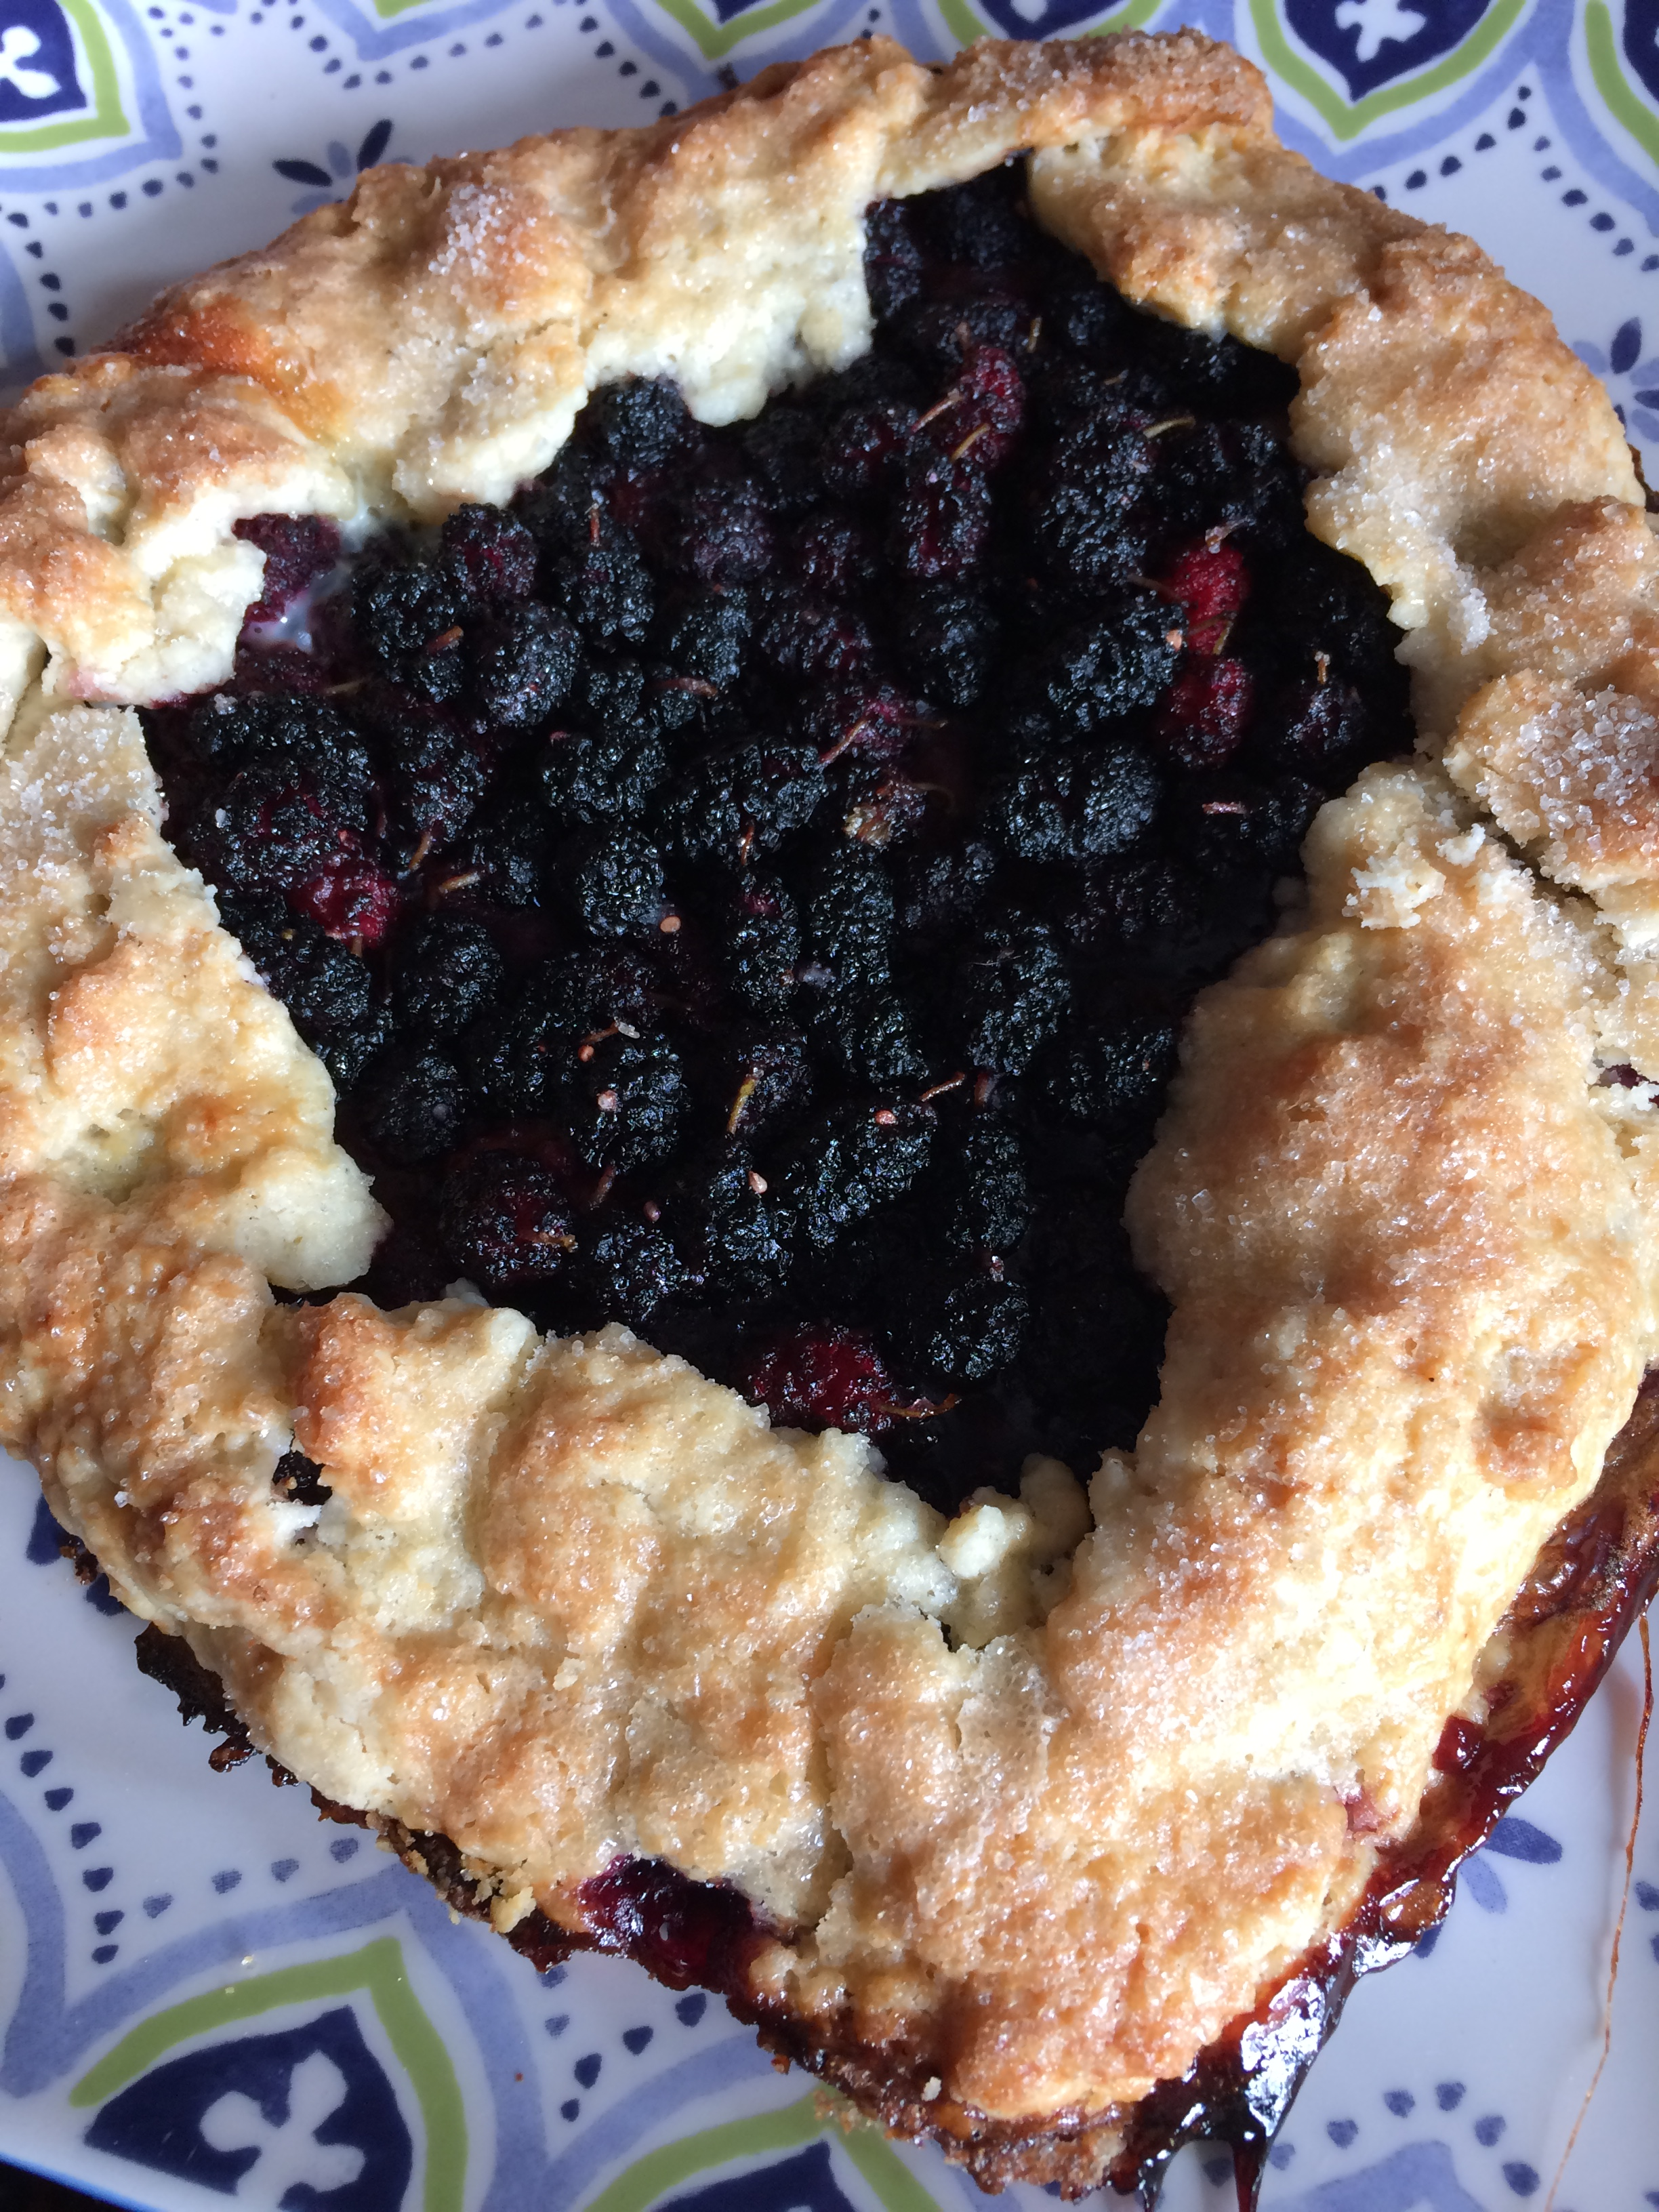 Alice june 2017 mulberry pie 5 clafouti.JPG